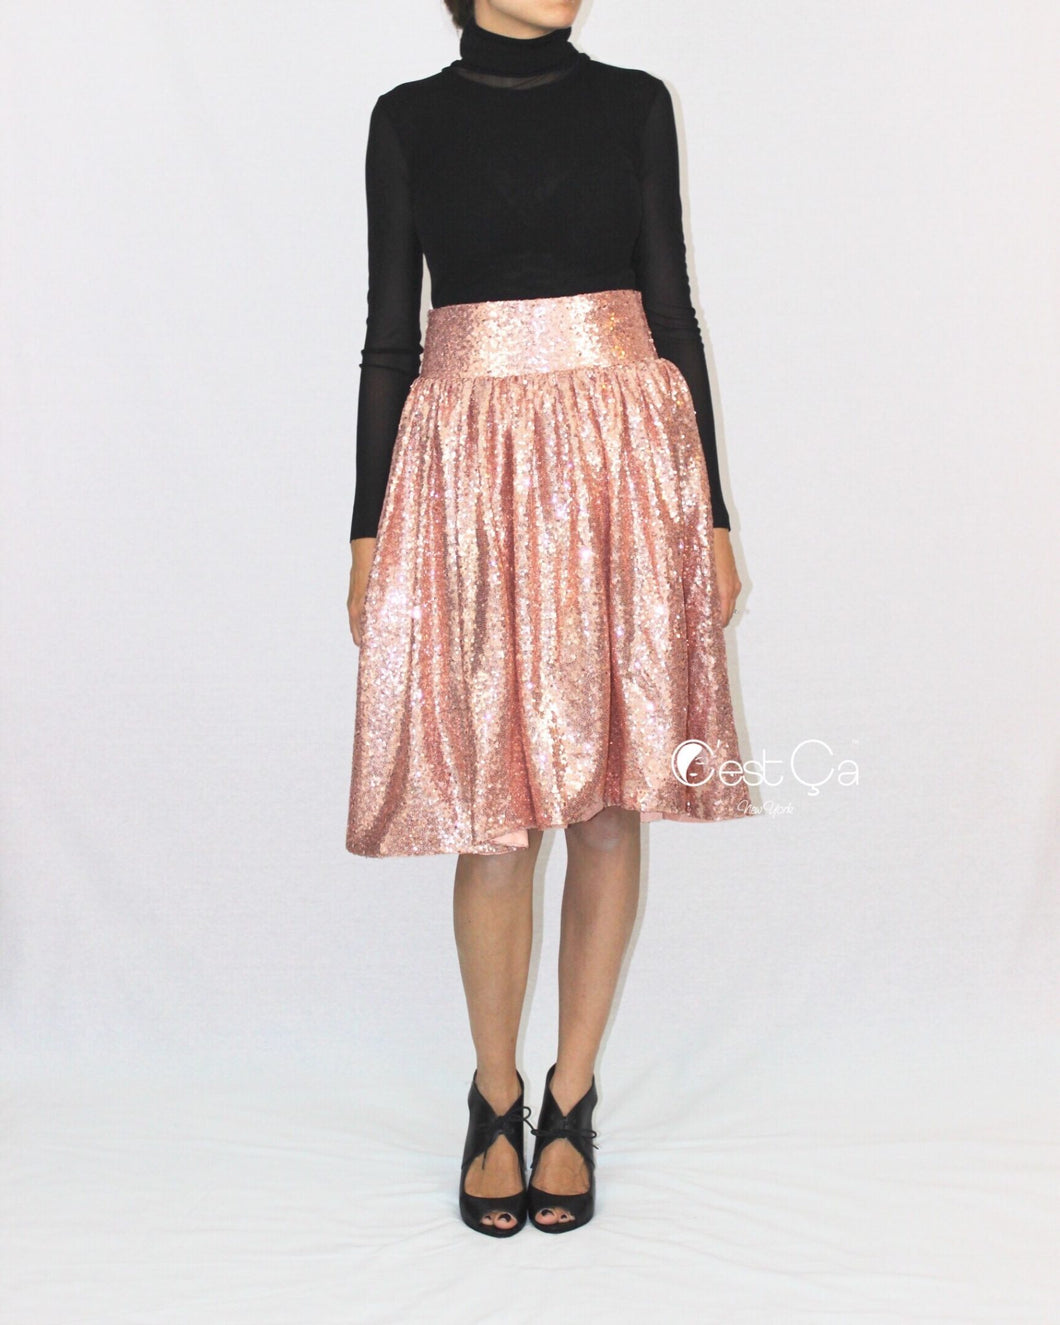 SAMPLE Charlotte Rose Gold Sequin Skirt (size 4, waist 28